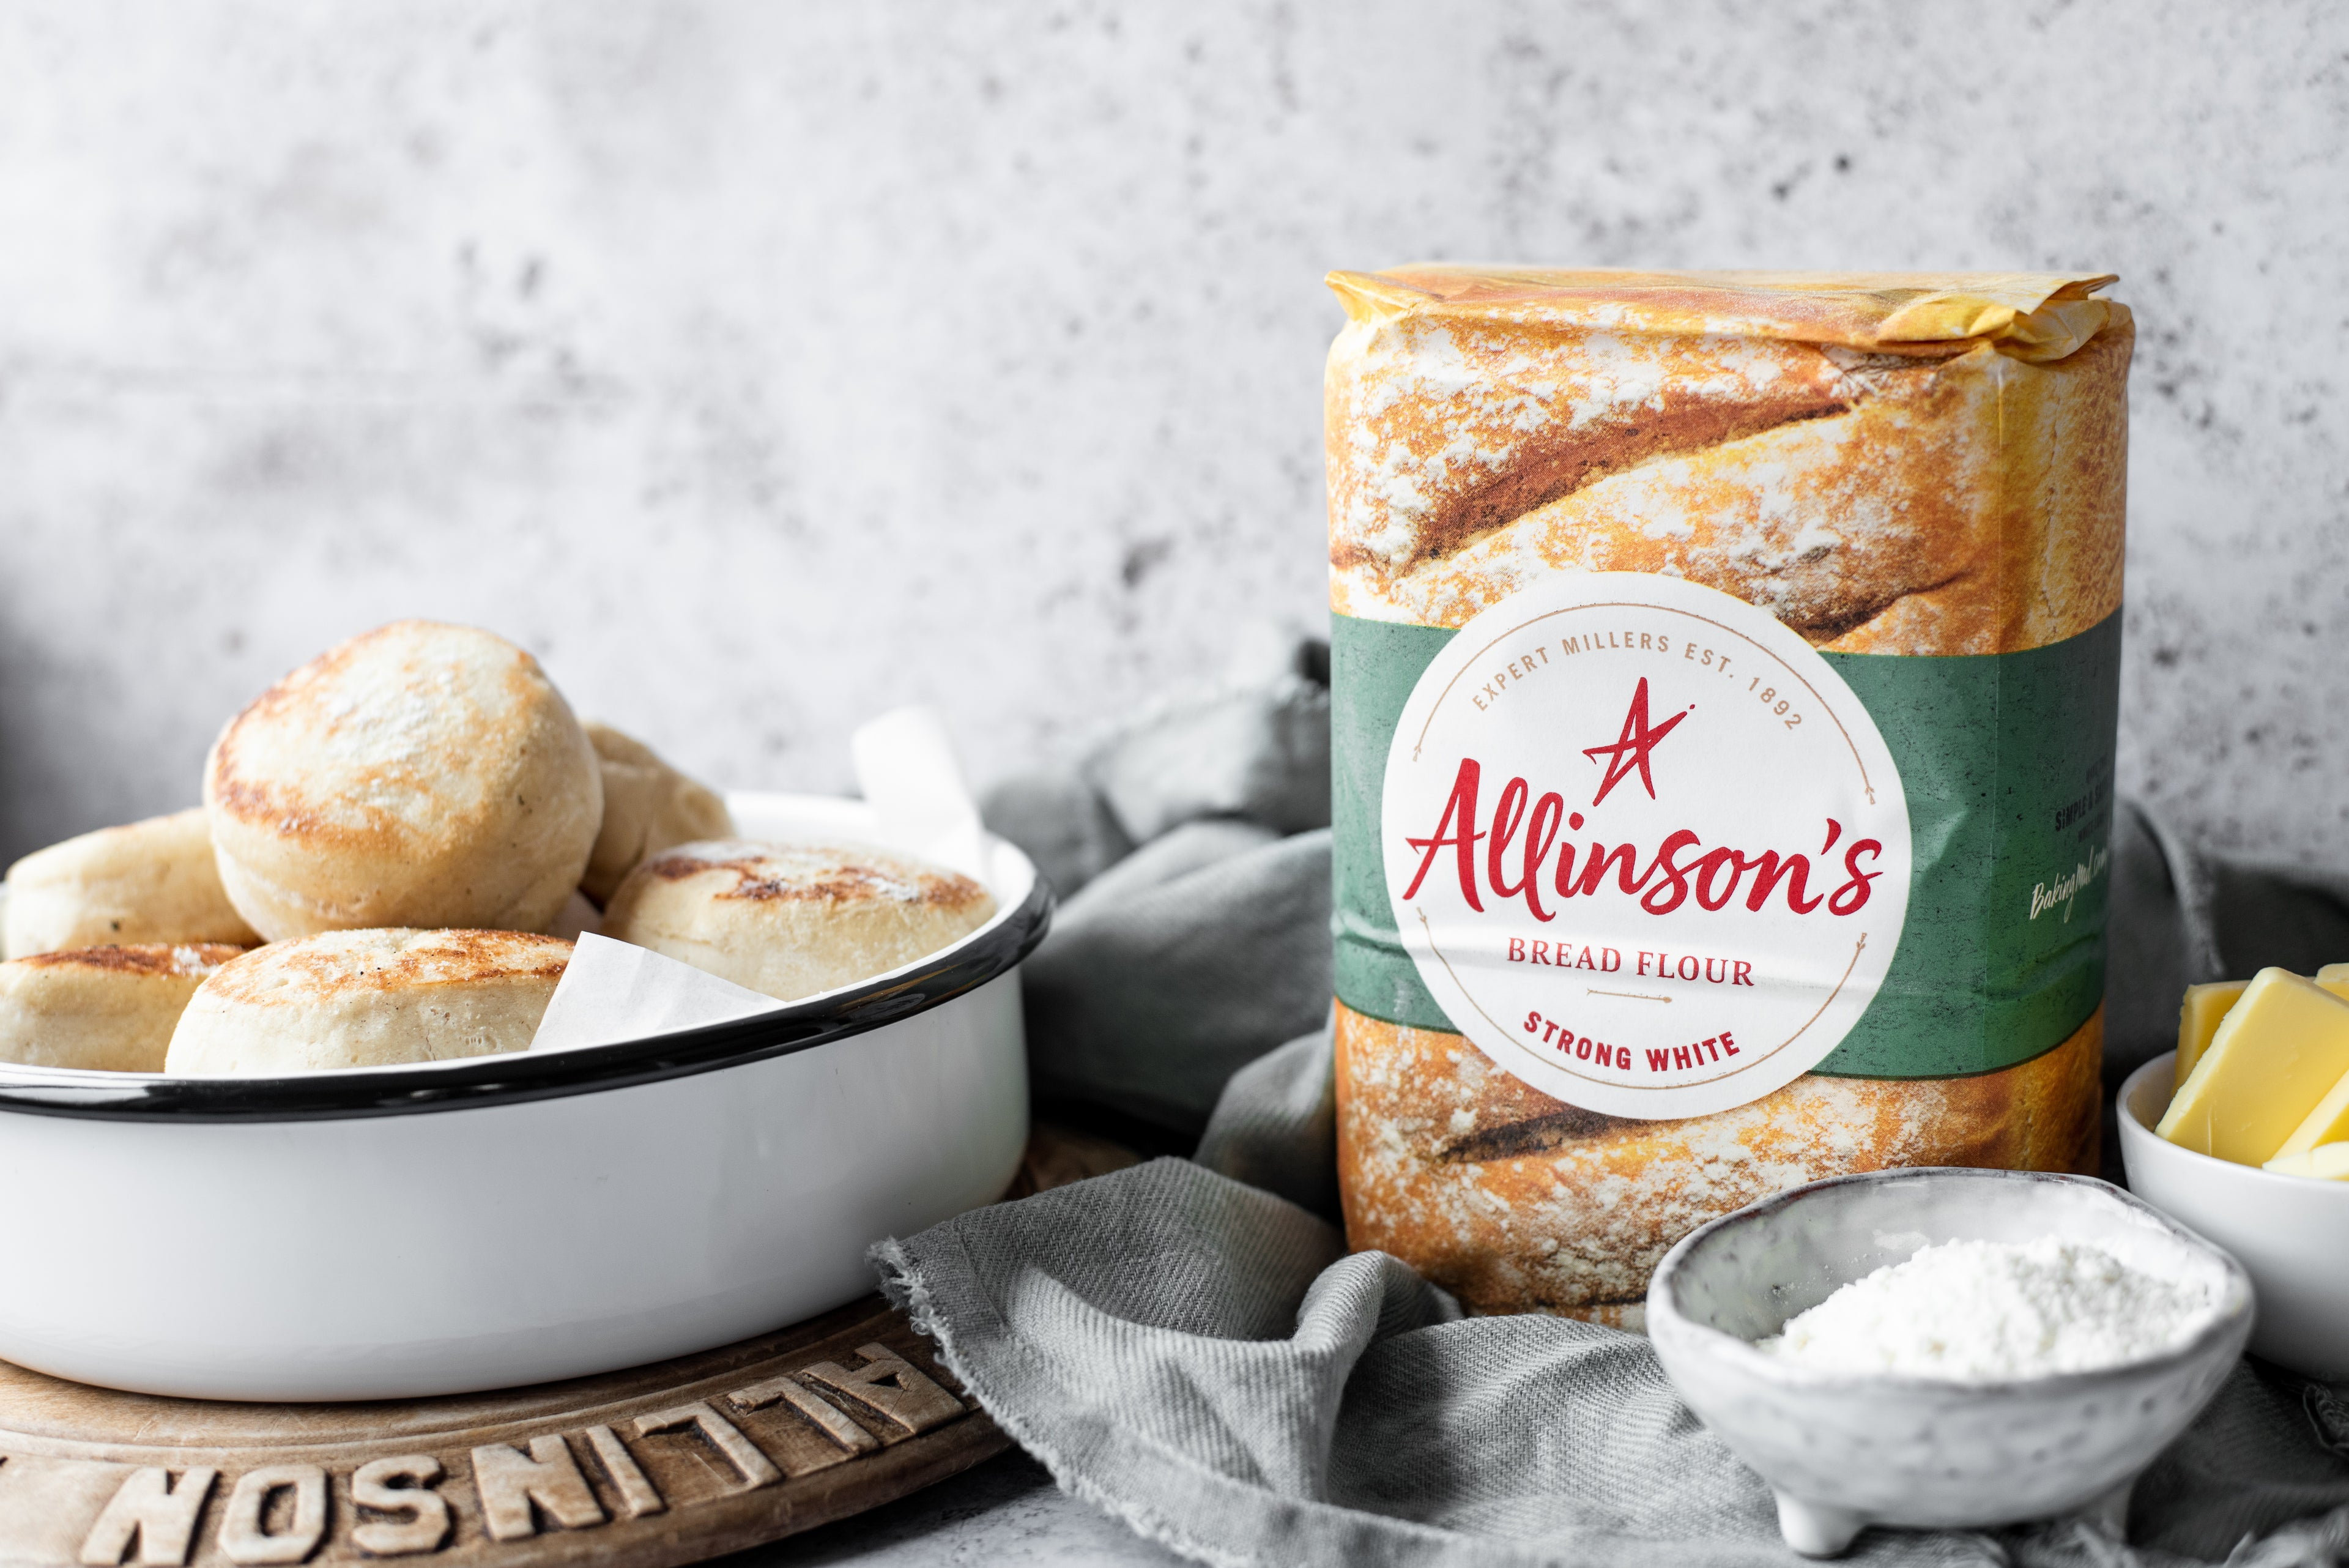 Allinsons-English-Muffins-FULL-RES-1.jpg